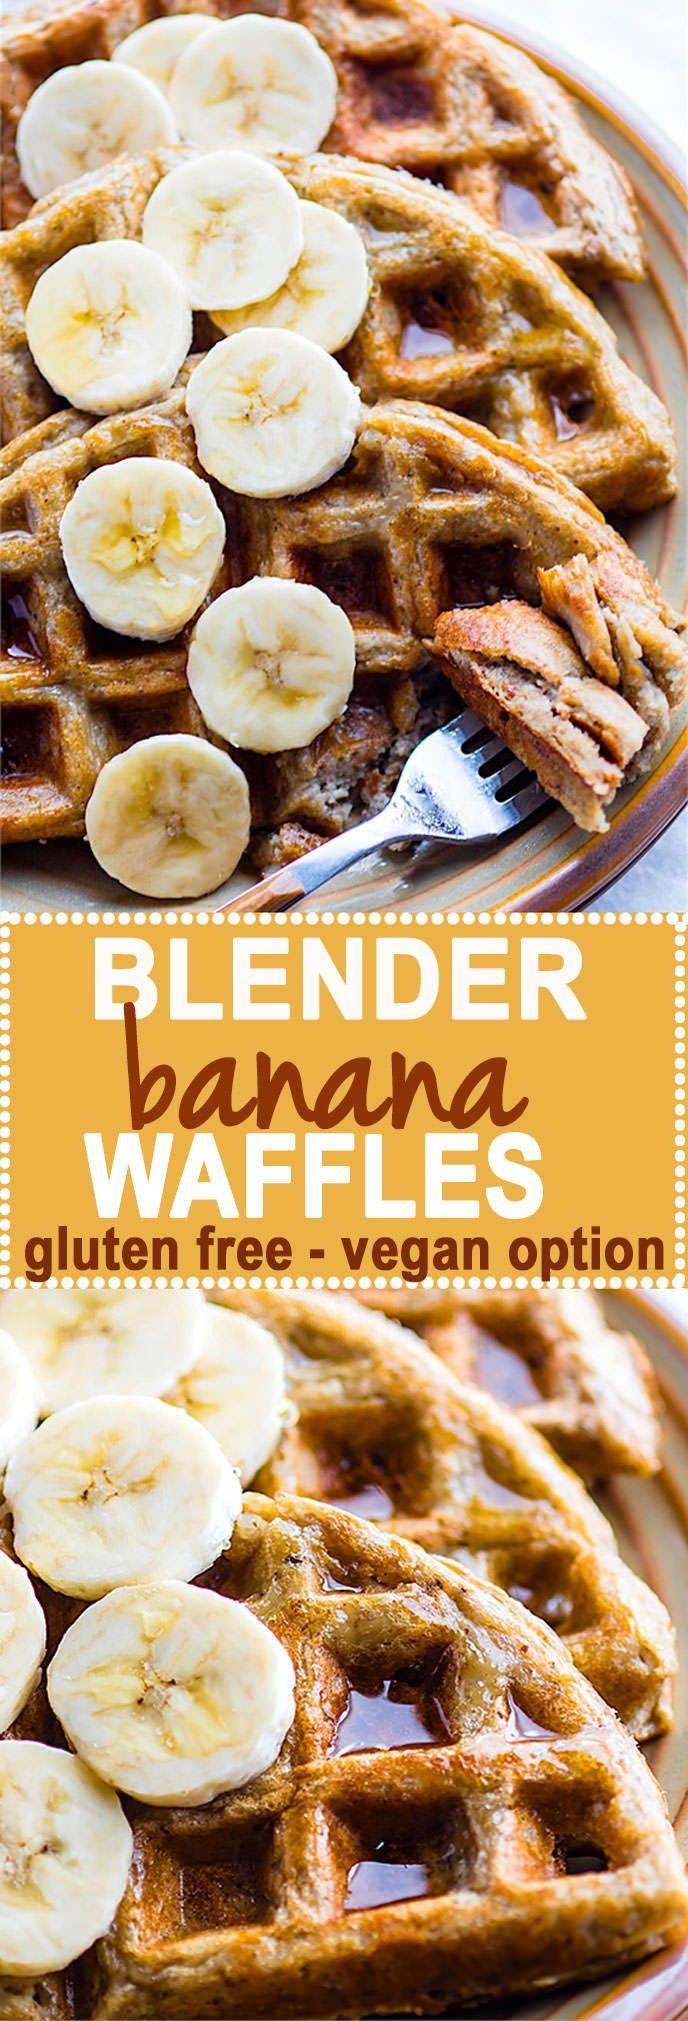 uper EASY Blender Banana Rice Gluten Free Waffles! Just blend and pour for these dairy free and gluten free Waffles. Freezer friendly, made with simple real FOOD ingredients, perfect fuel for breakfast or a delicious Weekend Breakfast. Vegan option as well! @cottercrunch